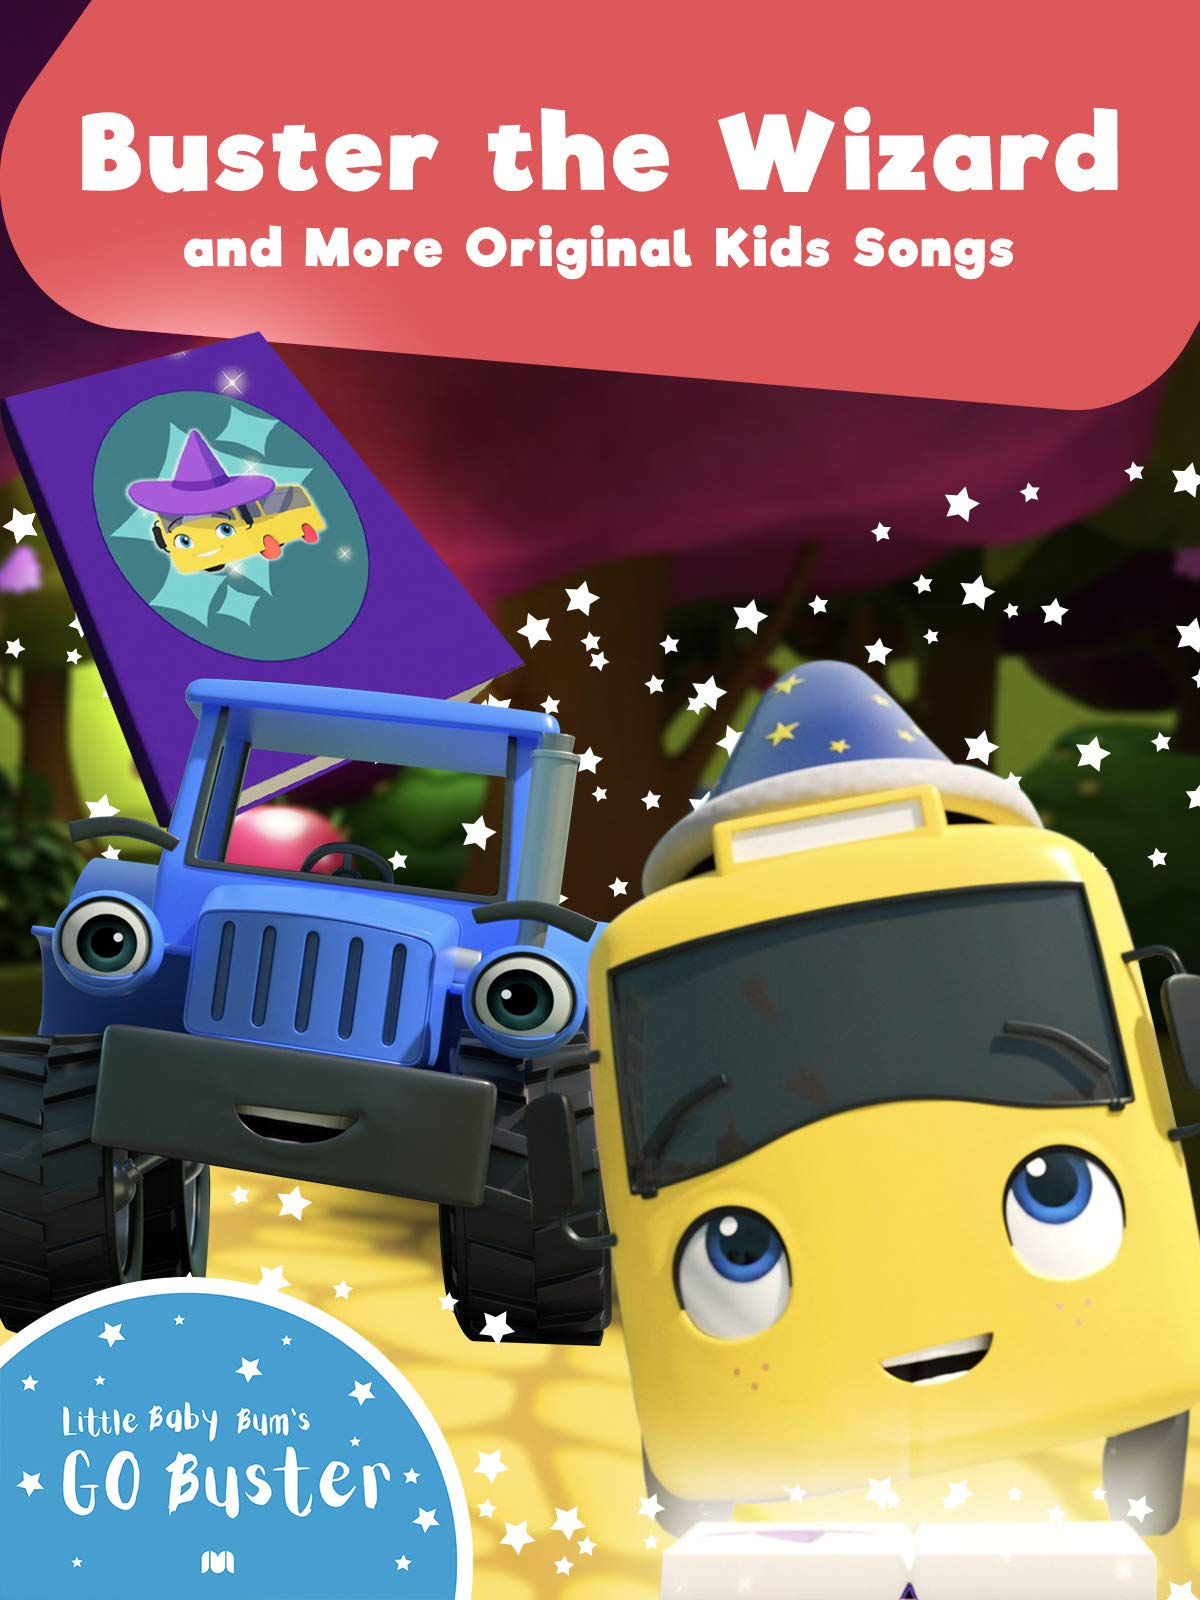 Go Buster - Buster the Wizard and More Original Kids Songs on Amazon Prime Video UK